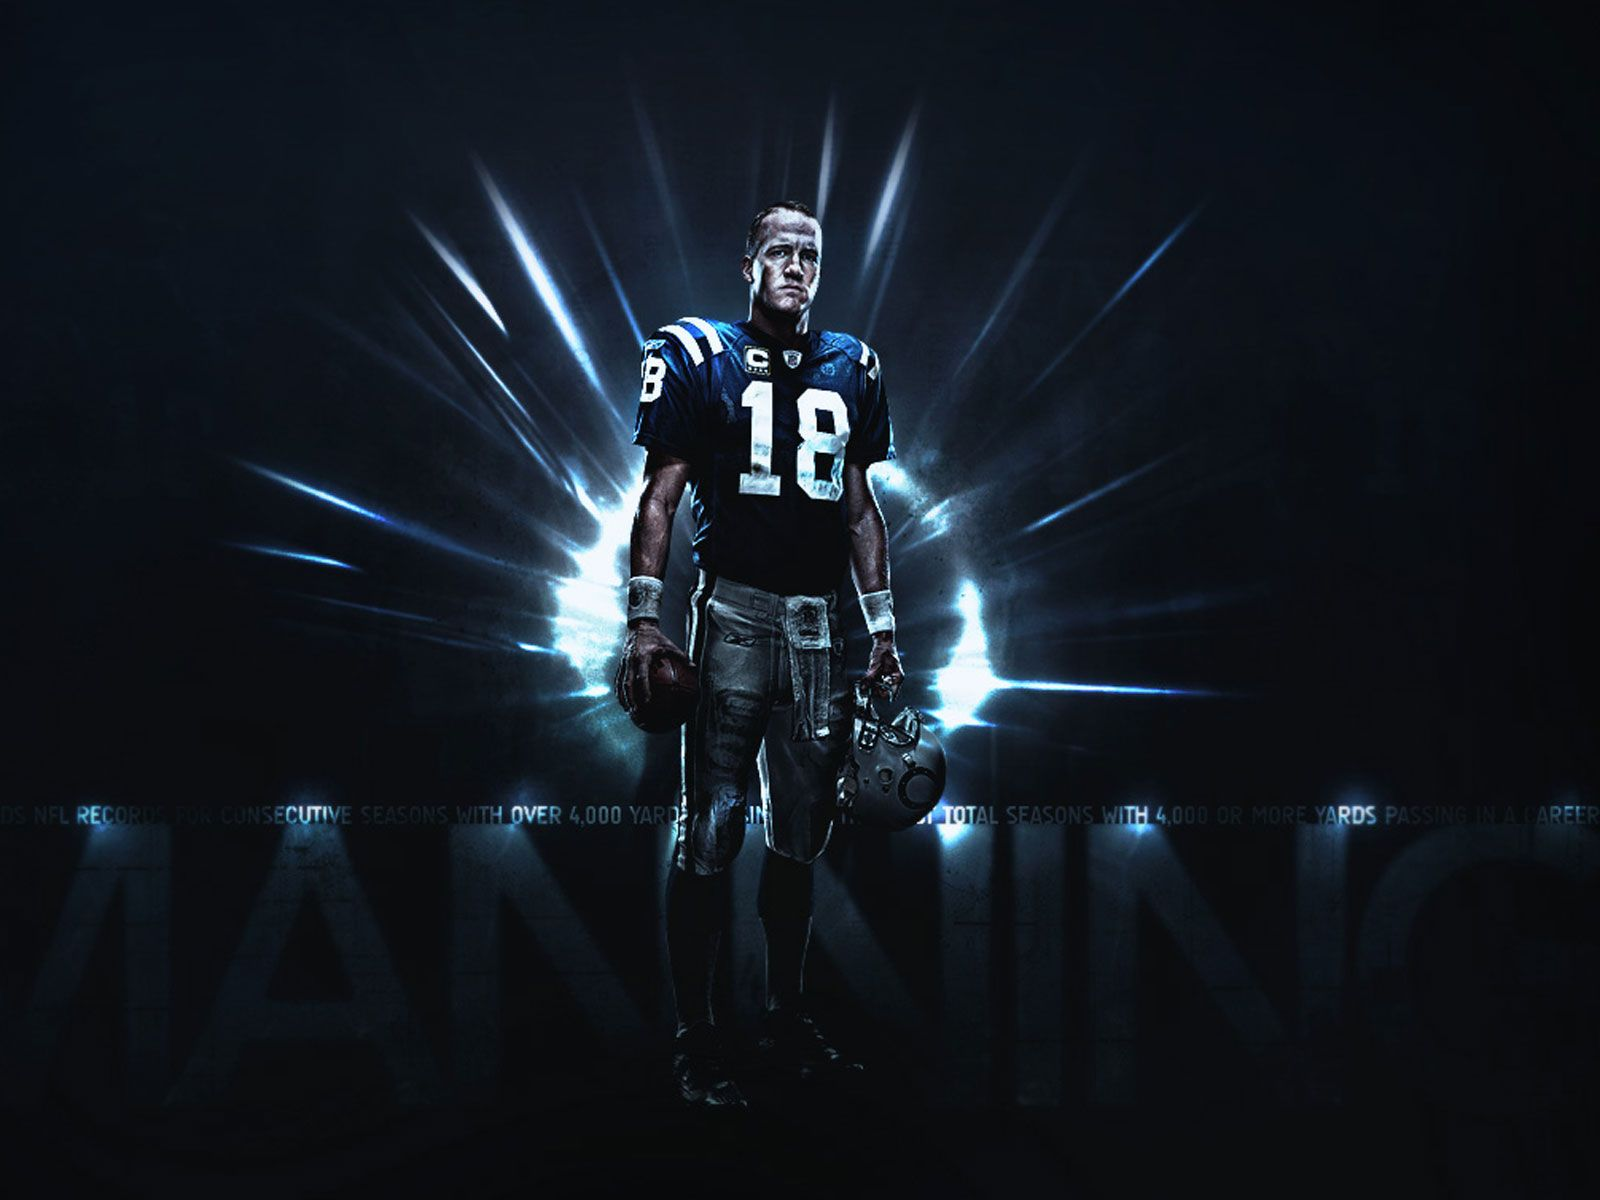 American Football Wallpapers Maker Pro: Peyton Manning Indianapolis Colts Poster Wallpaper